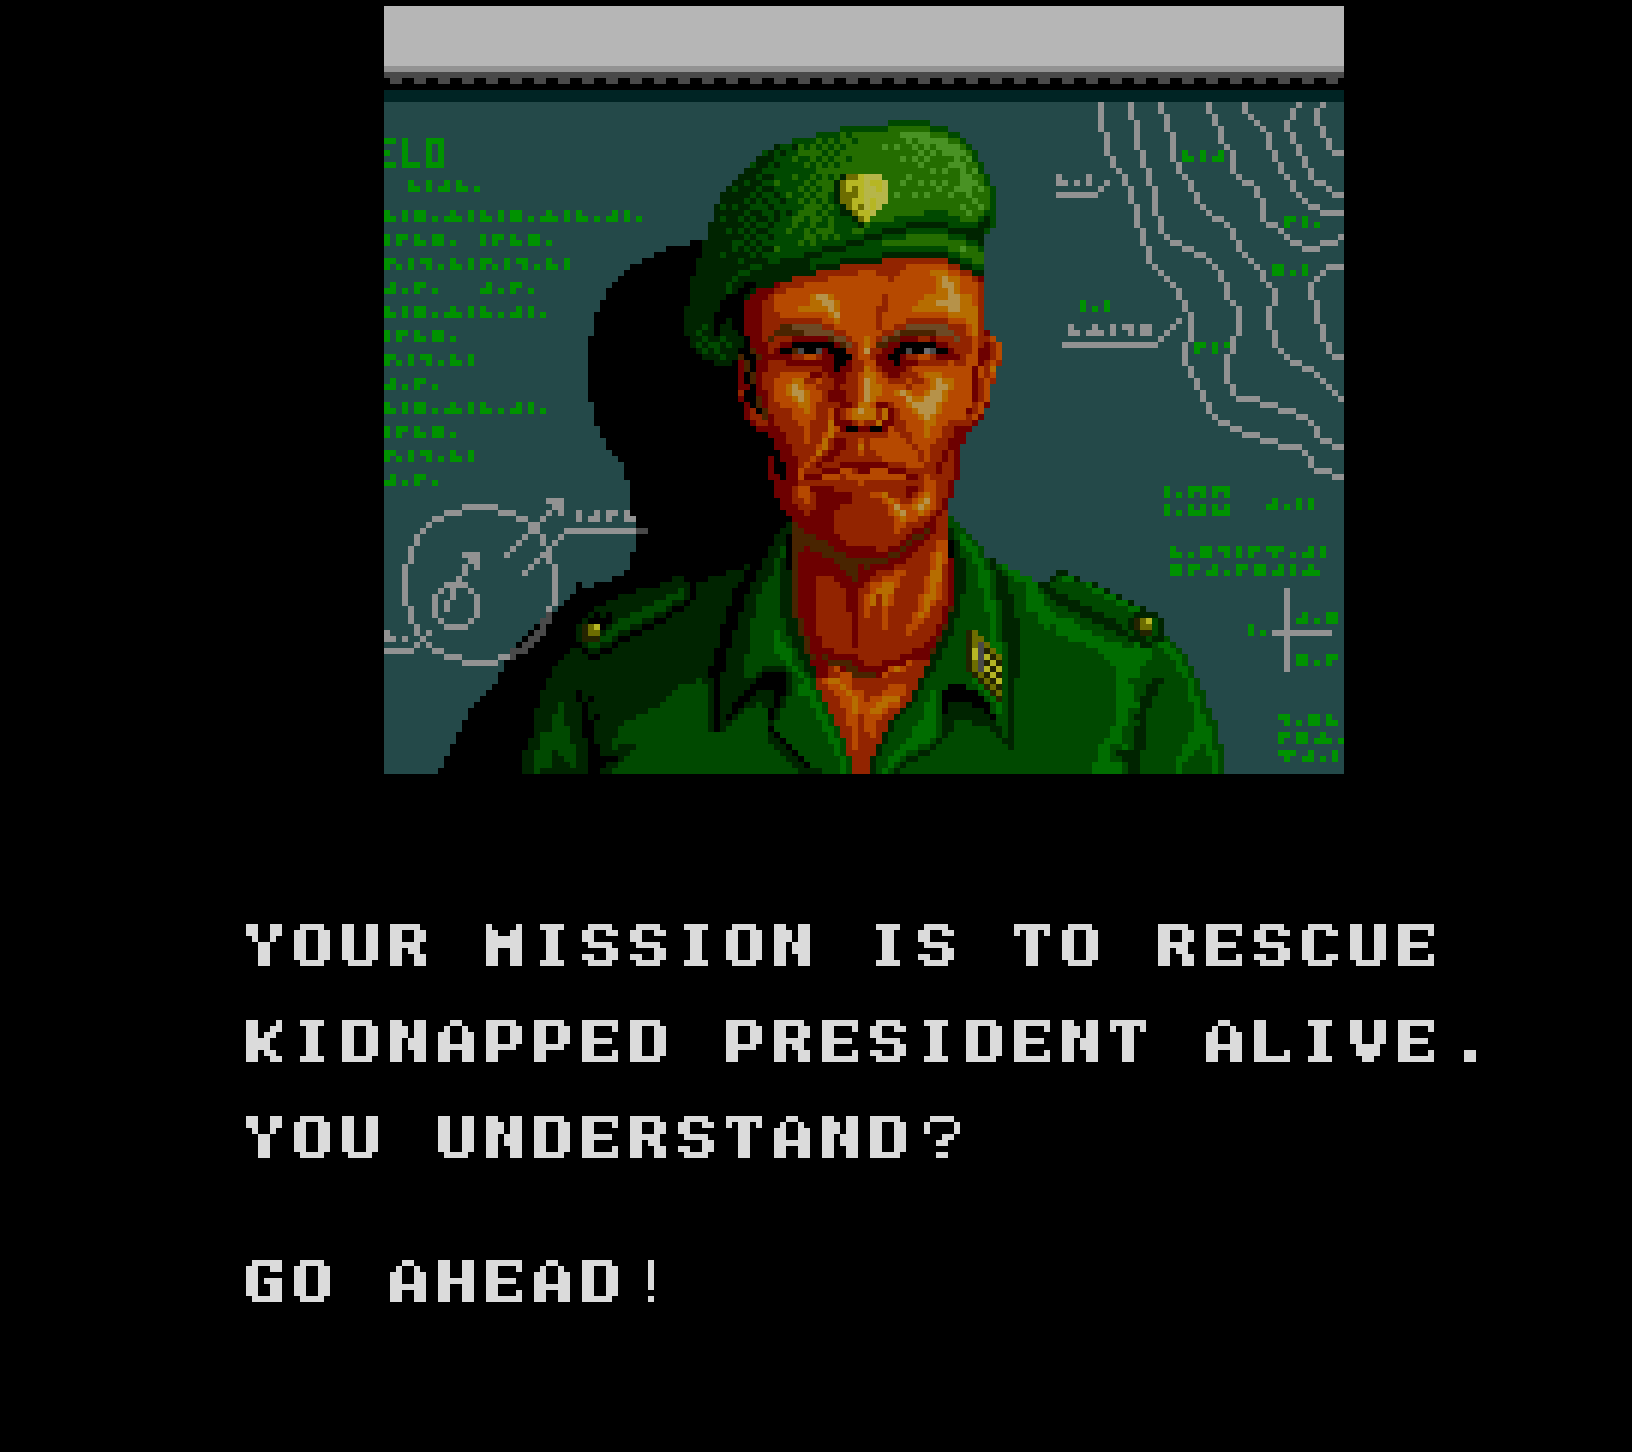 Your mission is to rescue kidnapped president alive. You understand? Go ahead!